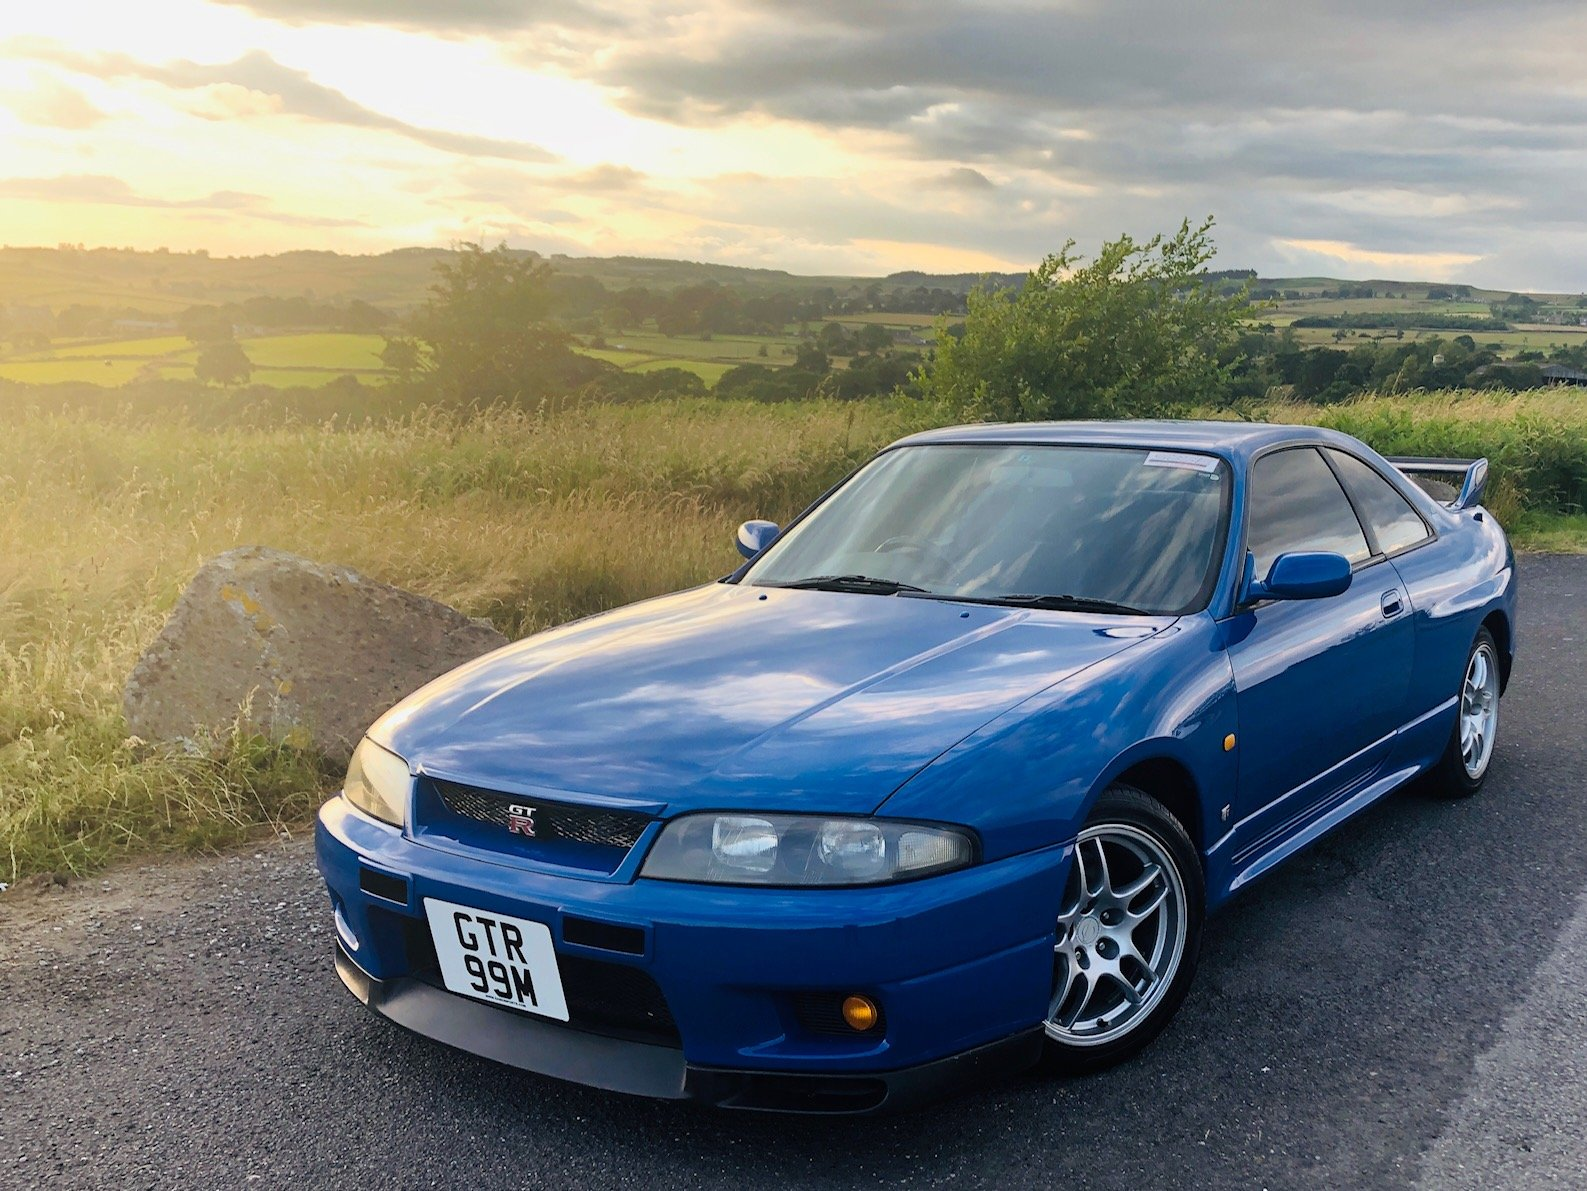 1996 Nissan Skyline - GTR LM Edition V-Spec R33 | Classic Driver Market